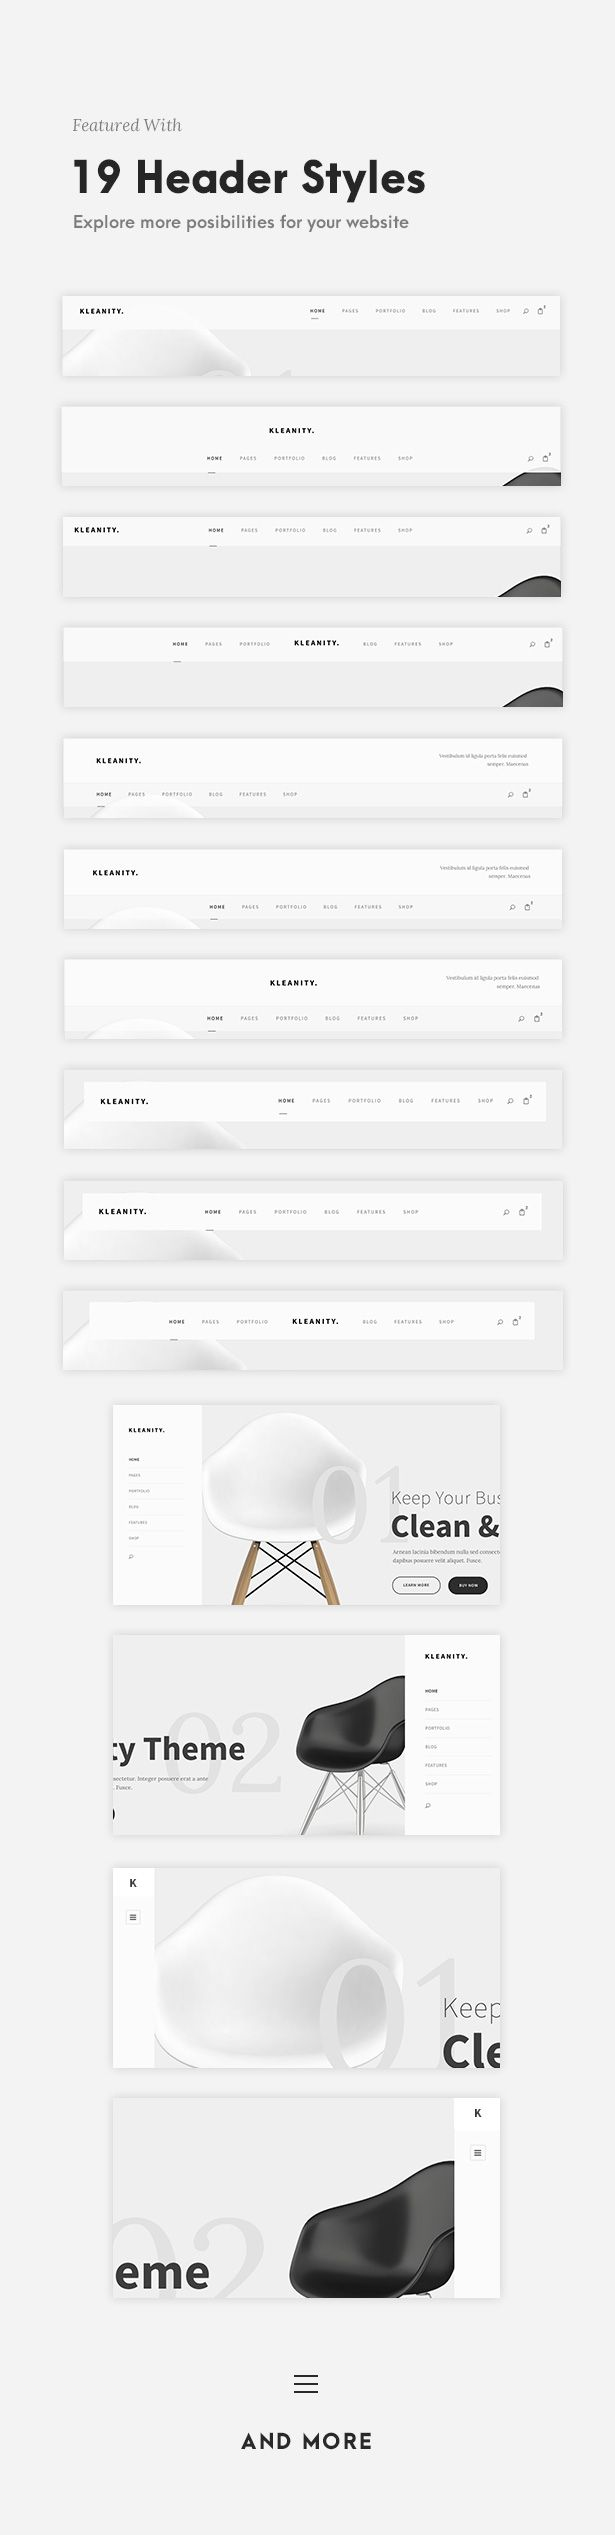 Kleanity - Minimalist WordPress Theme / Creative Portfolio #agency #artist #business • Download ➝ https://themeforest.net/item/kleanity-minimalist-wordpress-theme-creative-portfolio/19133384?ref=pxcr